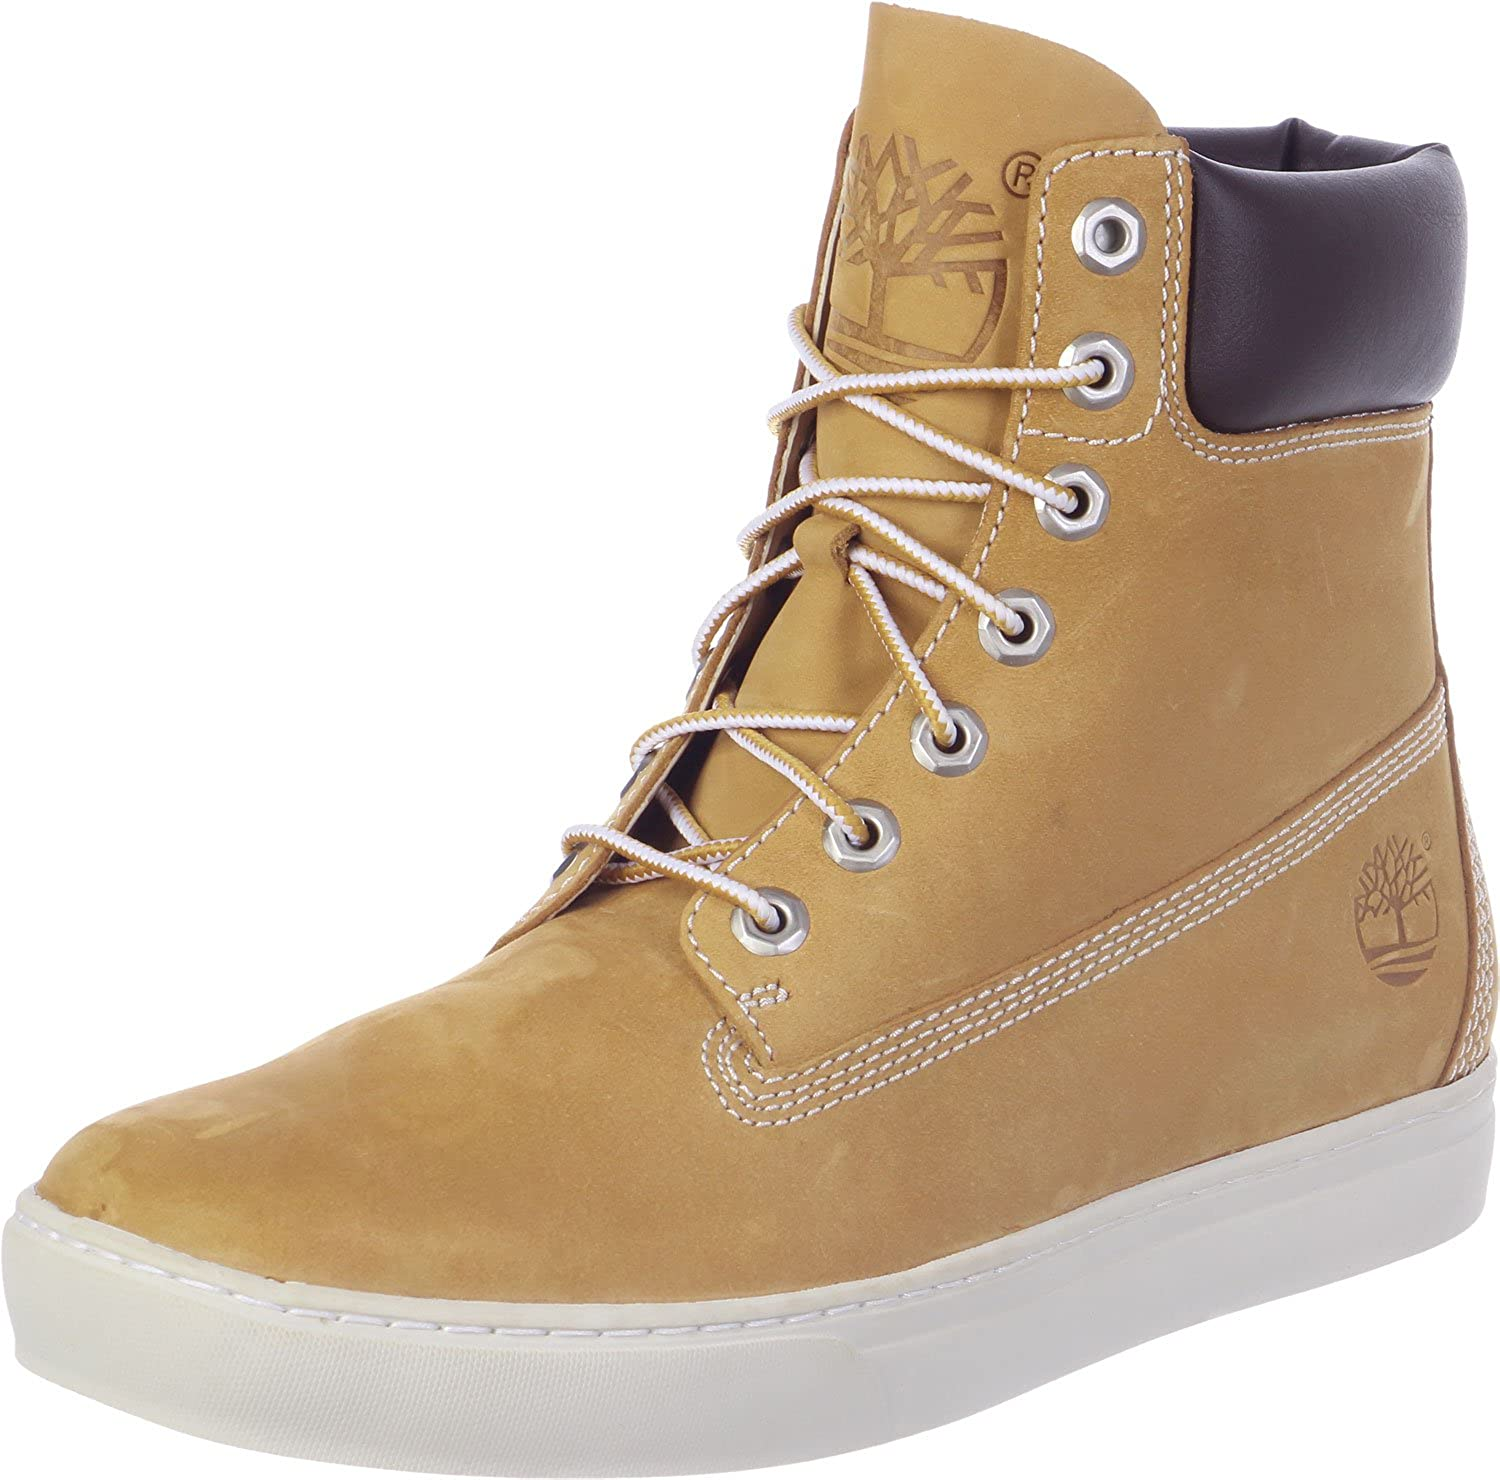 Doblez Con rapidez Una oración  Timberland Men Shoes/Boots Cupsole 6in Brown 41: Amazon.co.uk: Shoes & Bags